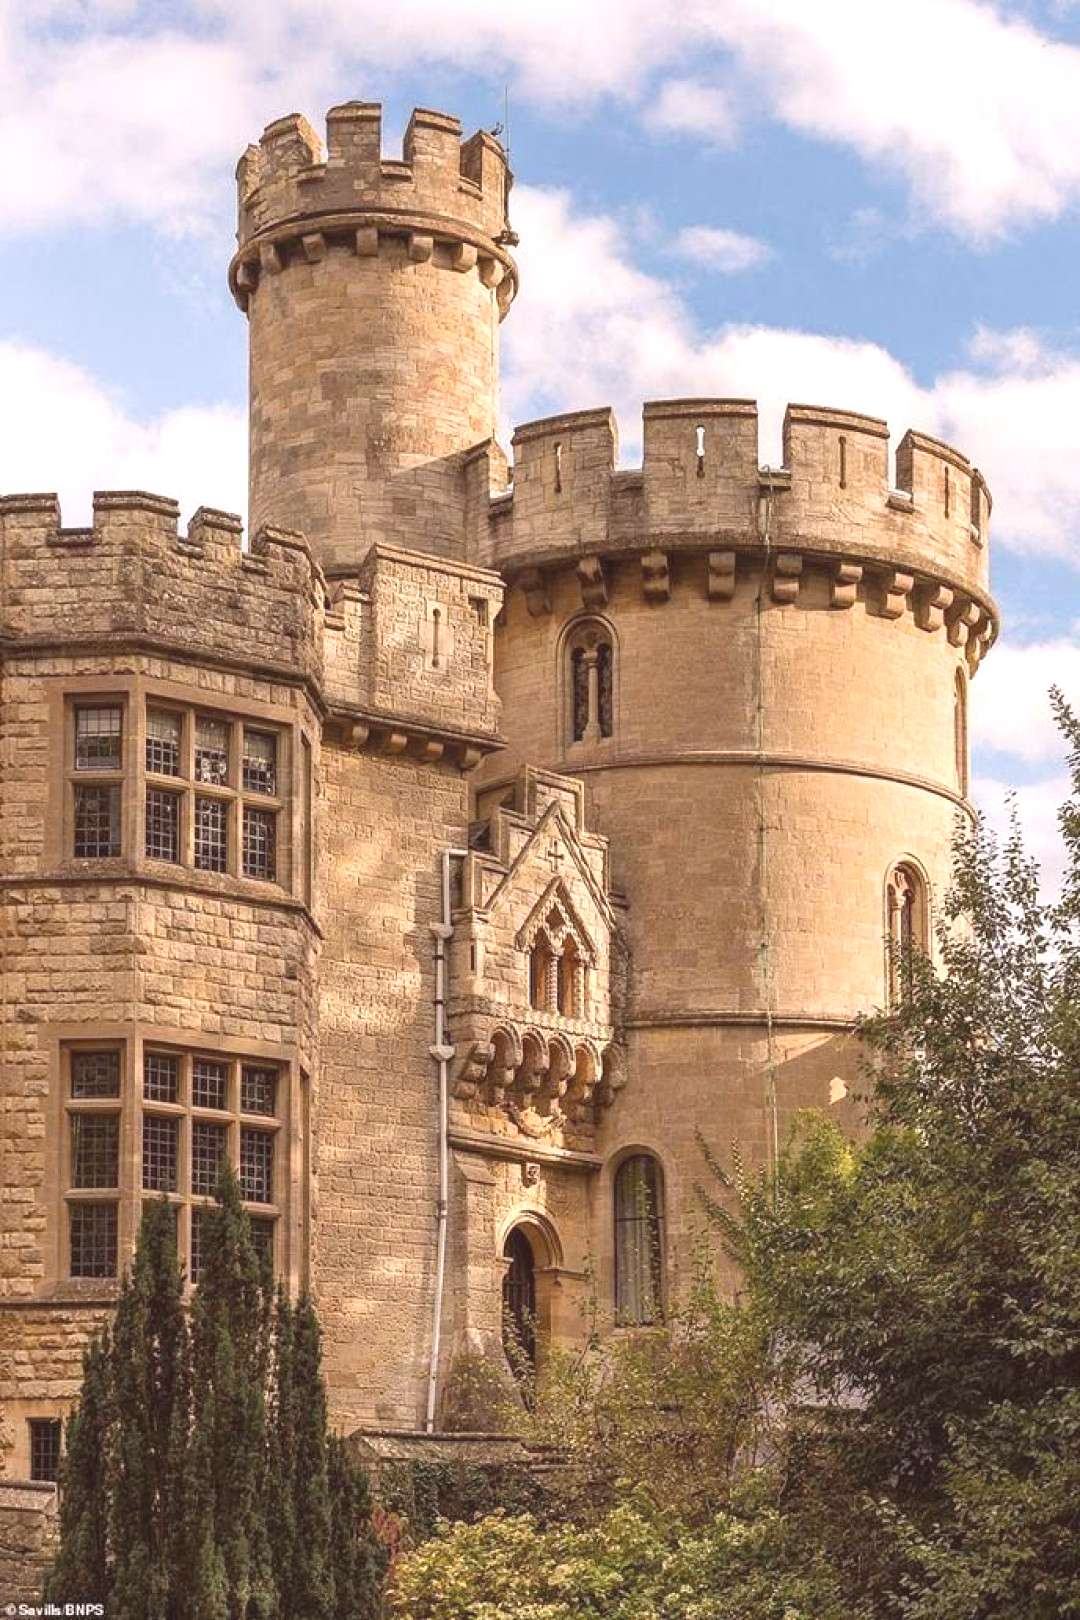 castles CLICK HERE 1080 Devizes Castle For Sale In Wiltshire England. $3,191,000.